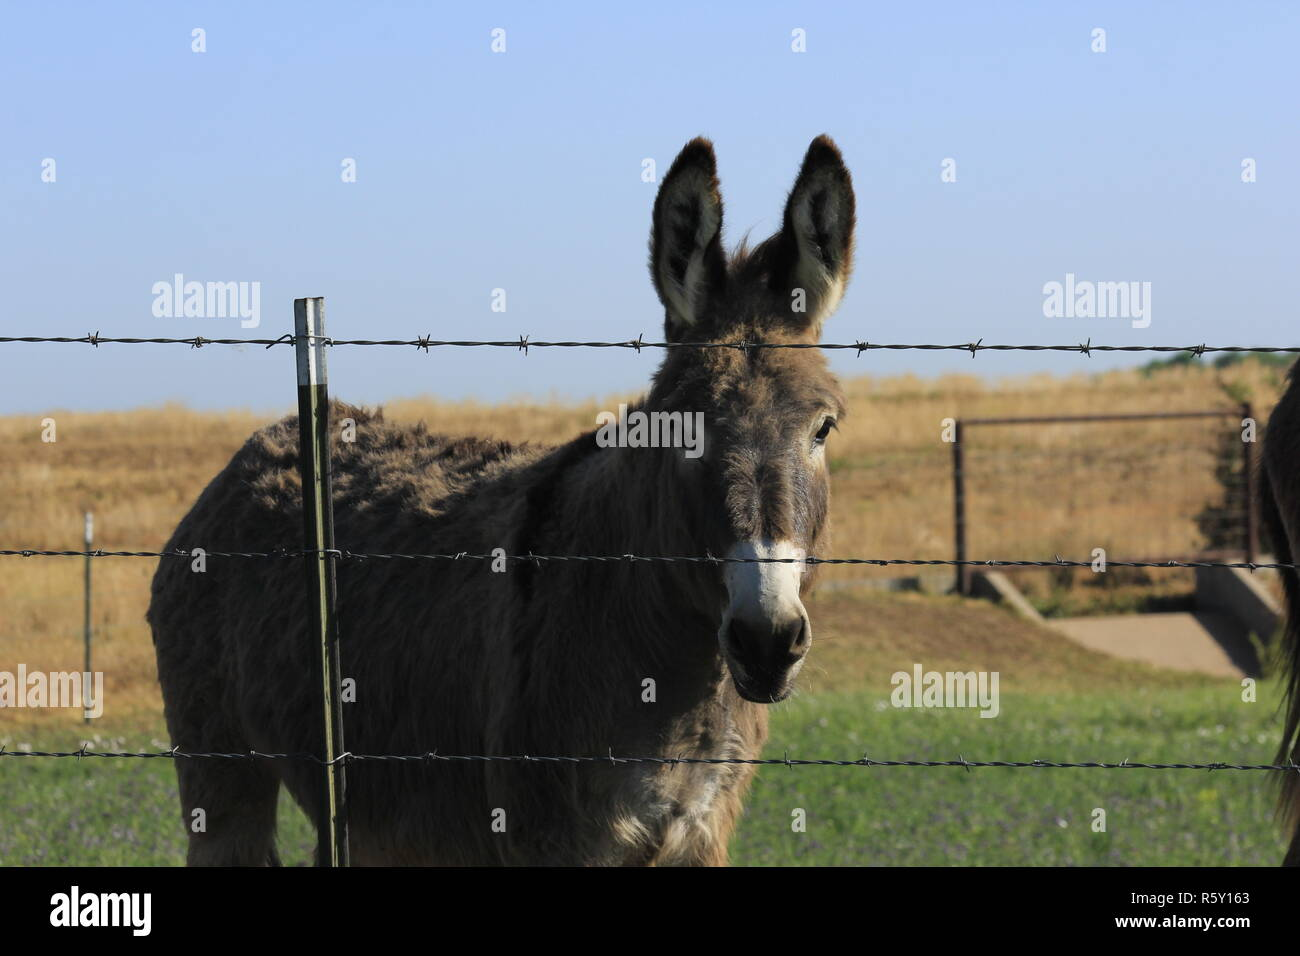 Mule in a Pasture with a fence and blue sky - Stock Image